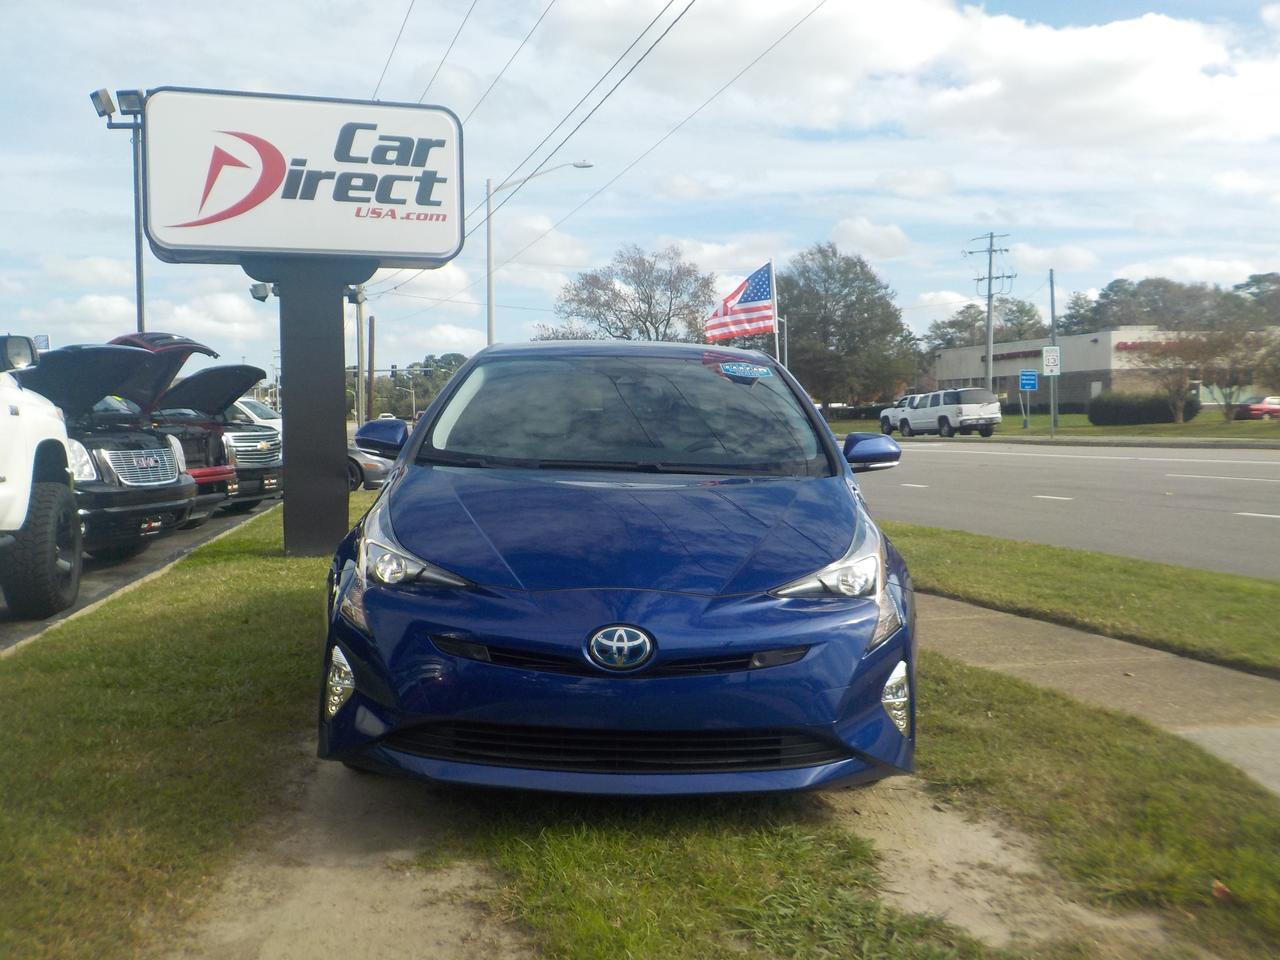 2018 TOYOTA PRIUS THREE HATCHBACK, ONE OWNER, BLUETOOTH, BACKUP CAM, KEYLESS START, NAVIGATION, ONLY 31K MILES! Virginia Beach VA